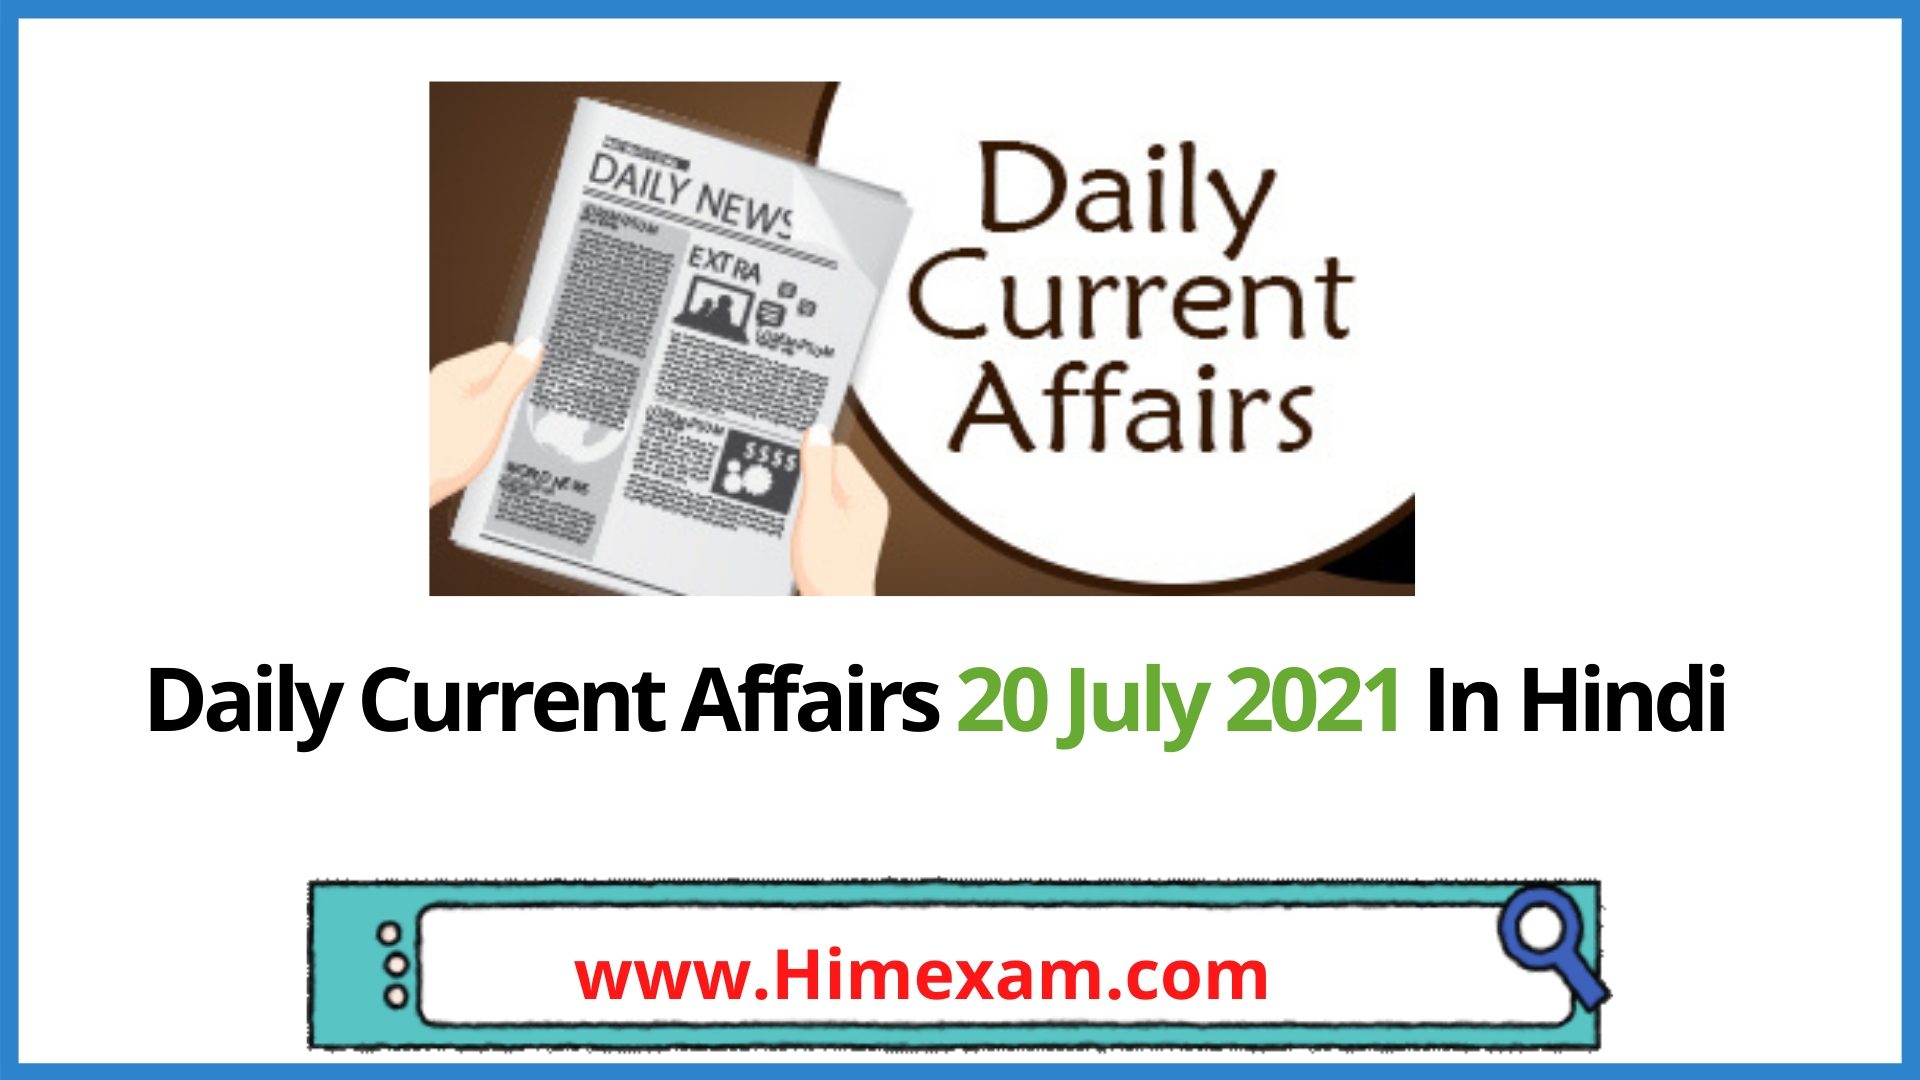 Daily Current Affairs 20 July 2021 In Hindi